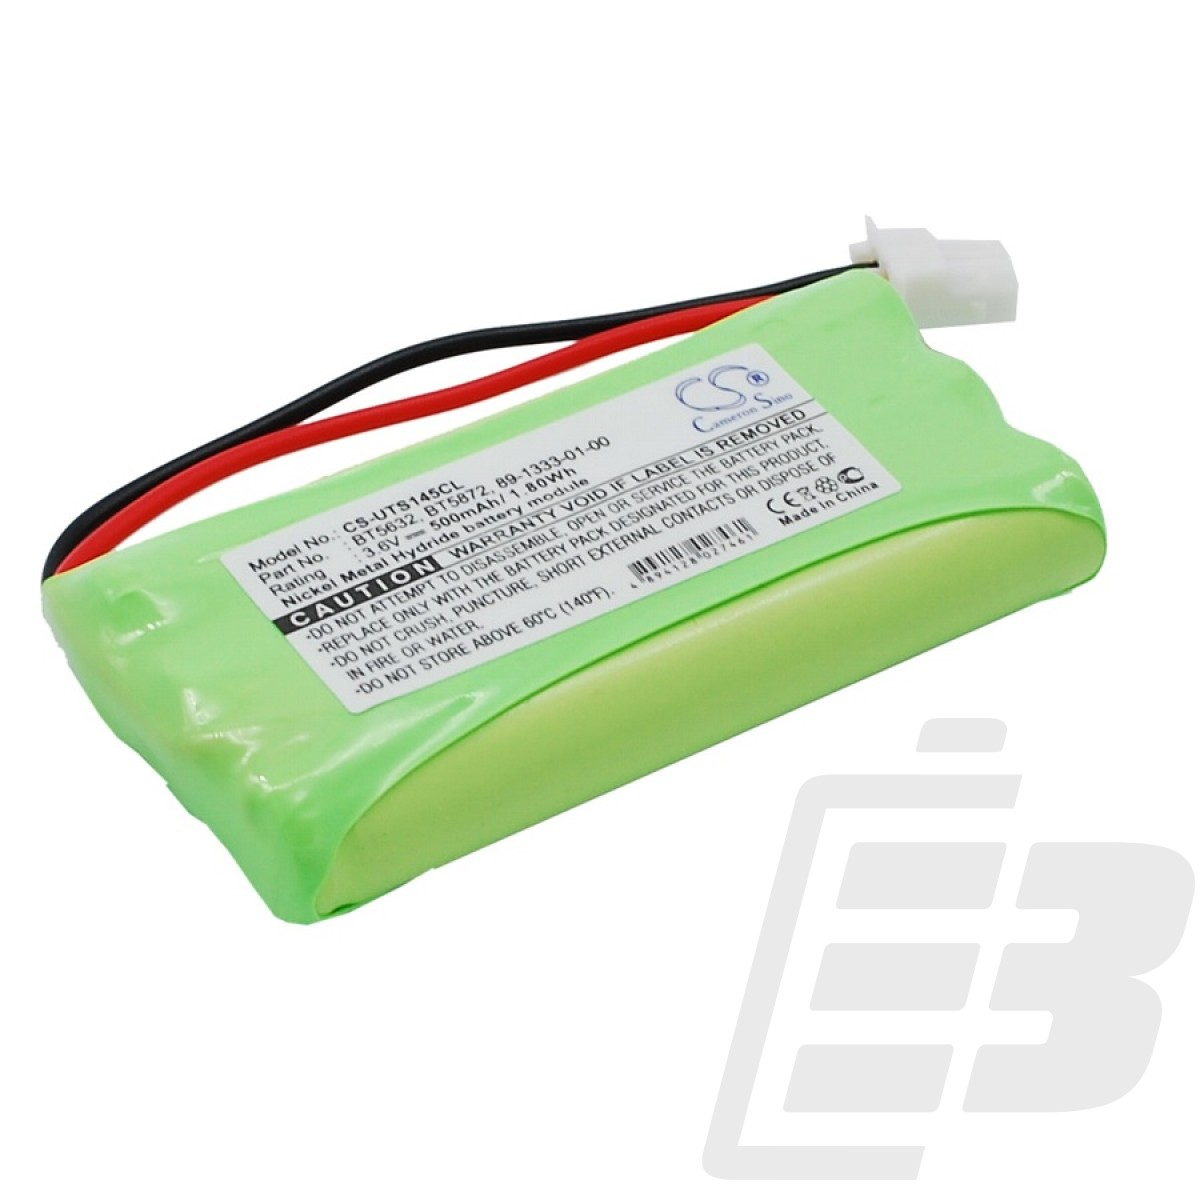 Cordless phone battery Uniden 5105_1